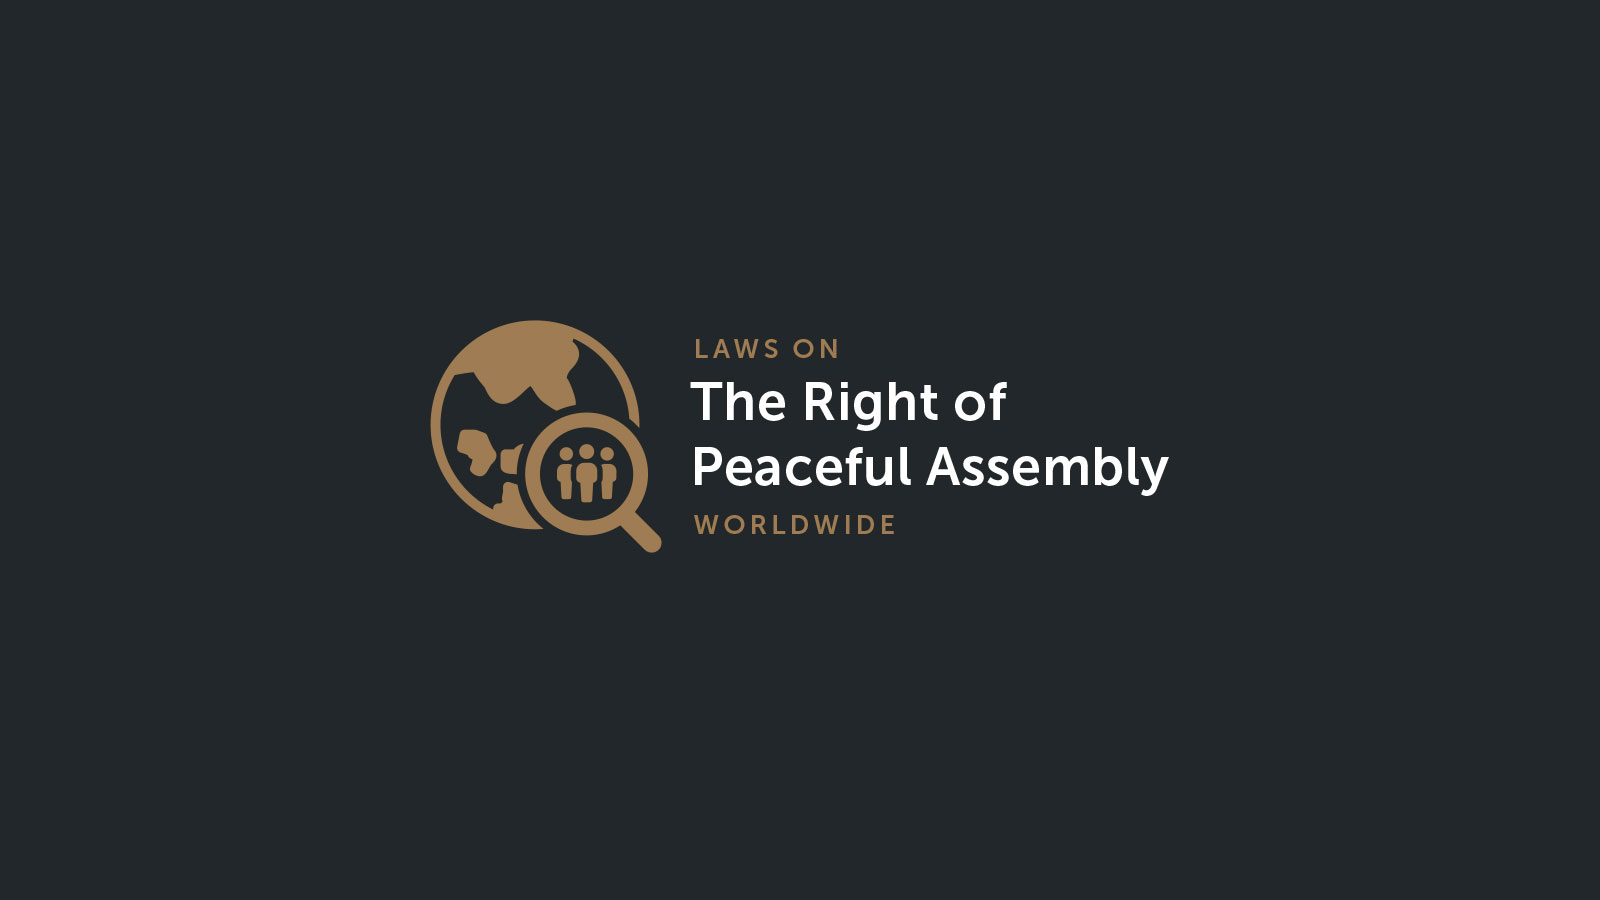 Human Rights Committee adopts General Comment on Right of Peaceful Assembly